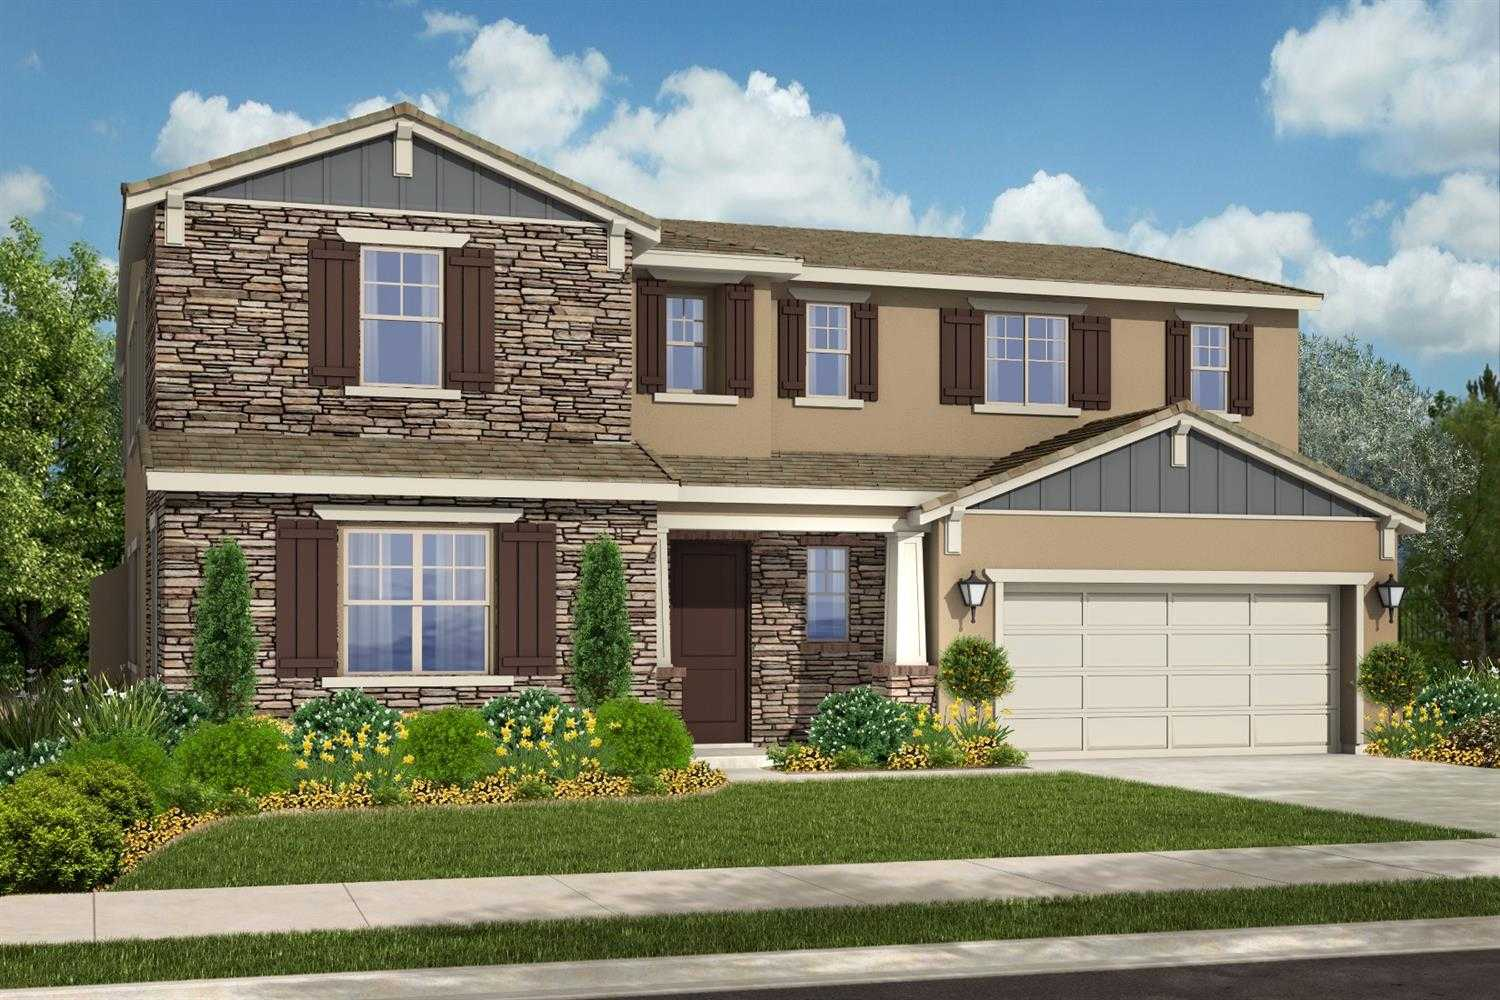 $584,010 - 5Br/5Ba -  for Sale in Lathrop